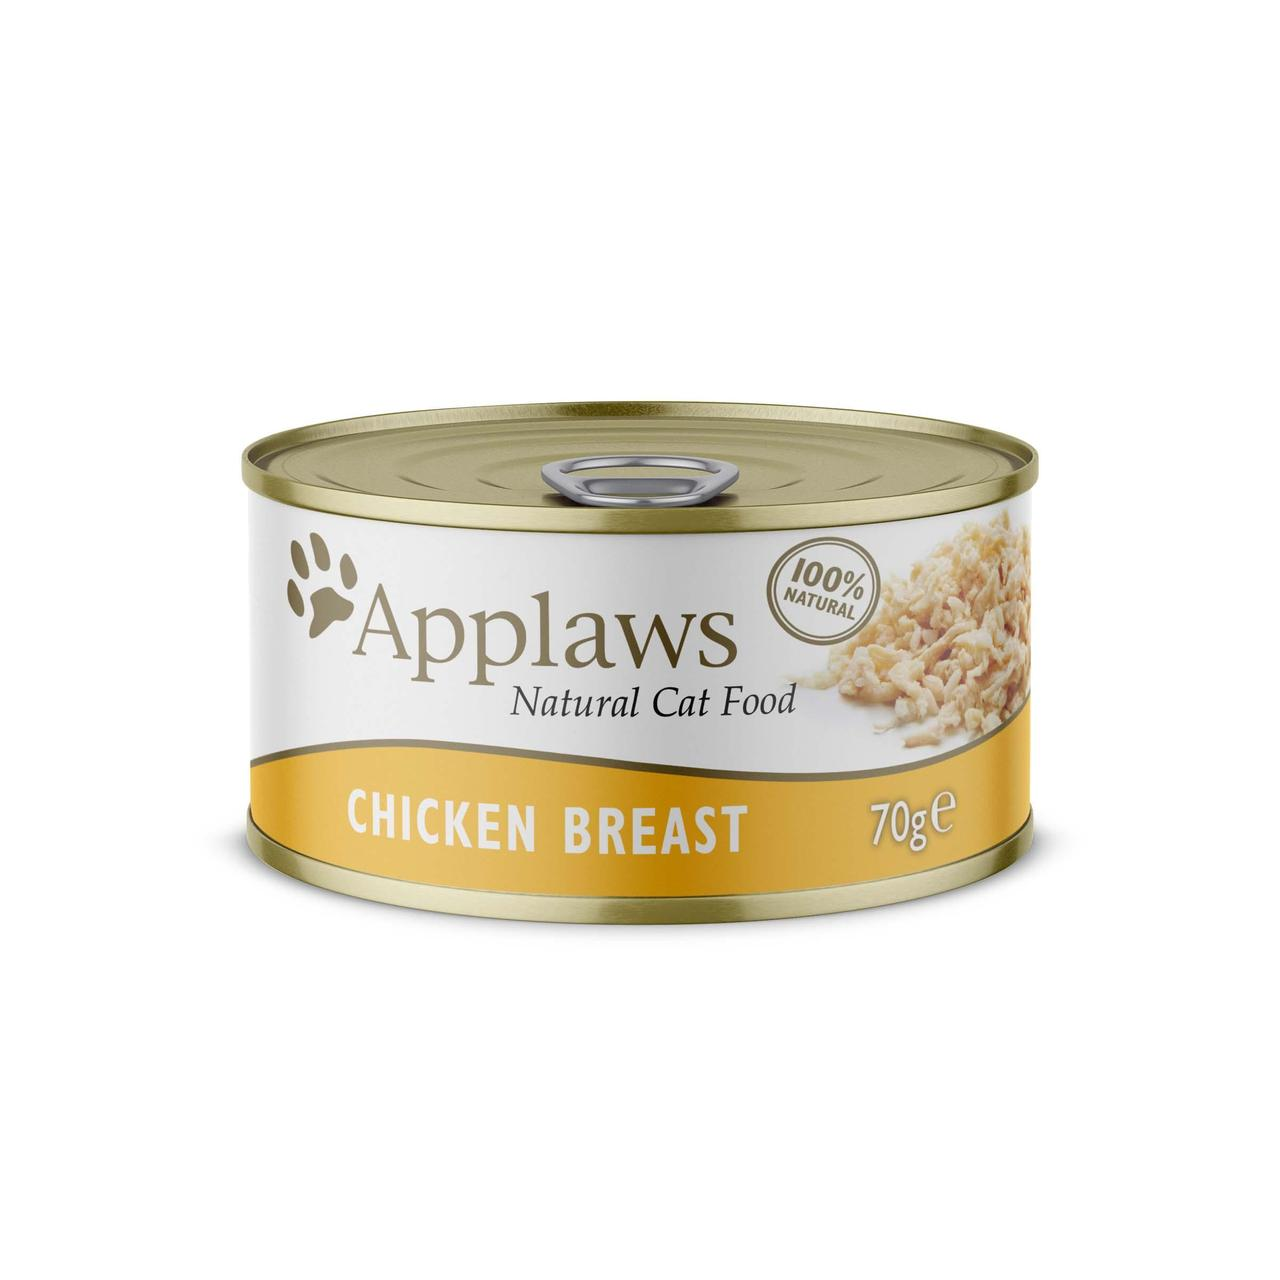 Applaws Cat Food Chicken Breas At Fetch Co Uk The Online